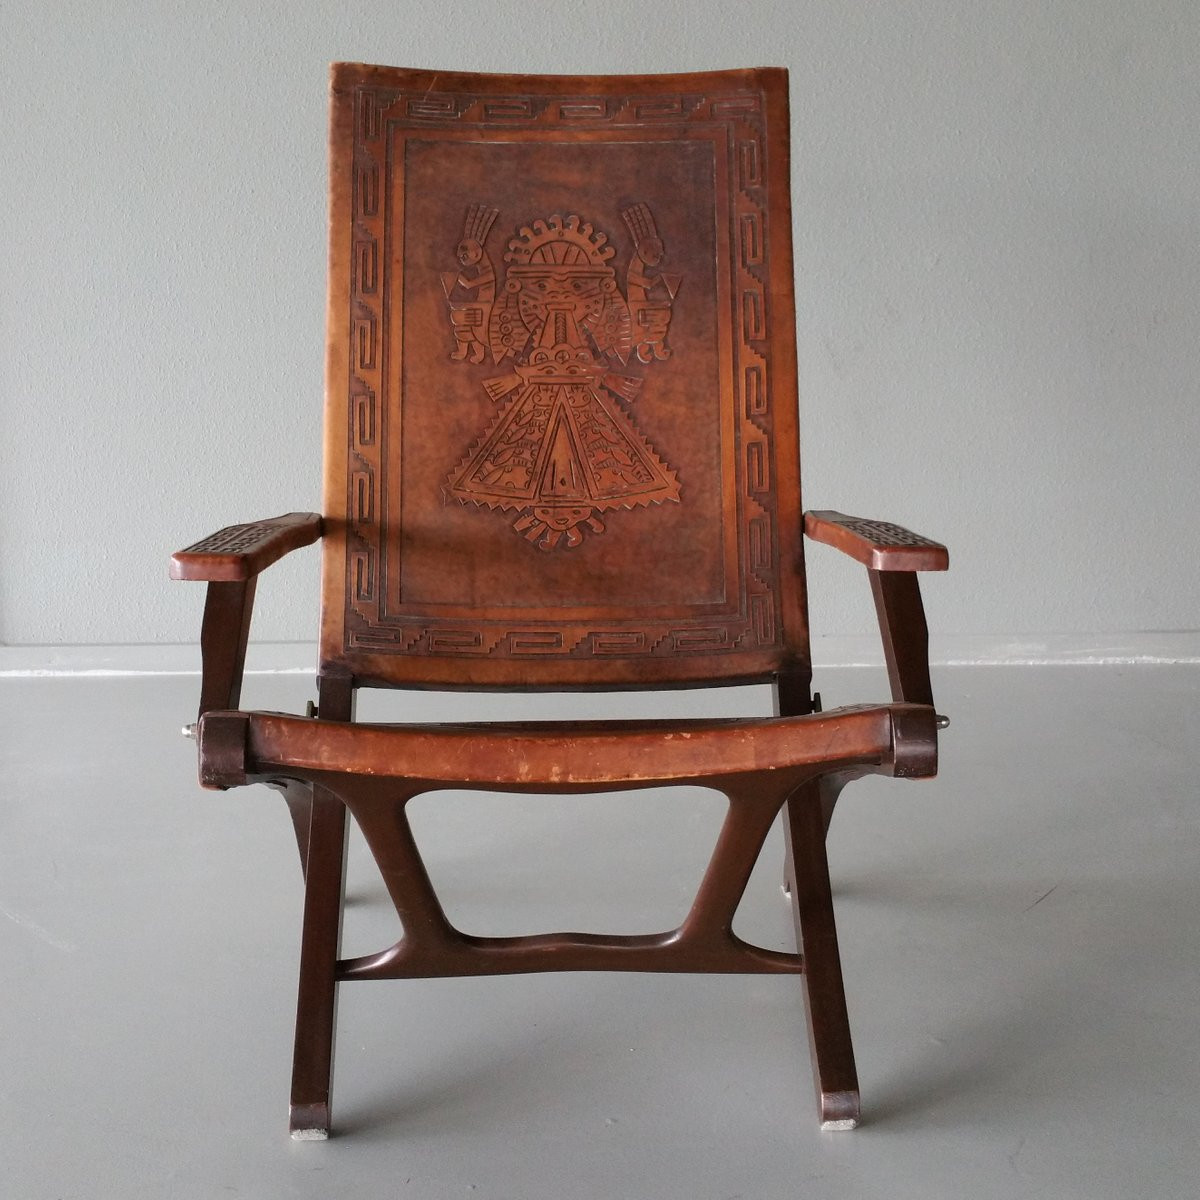 Leather wood folding chair by angel pazmino for muebles - Muebles estilo provenzal ...